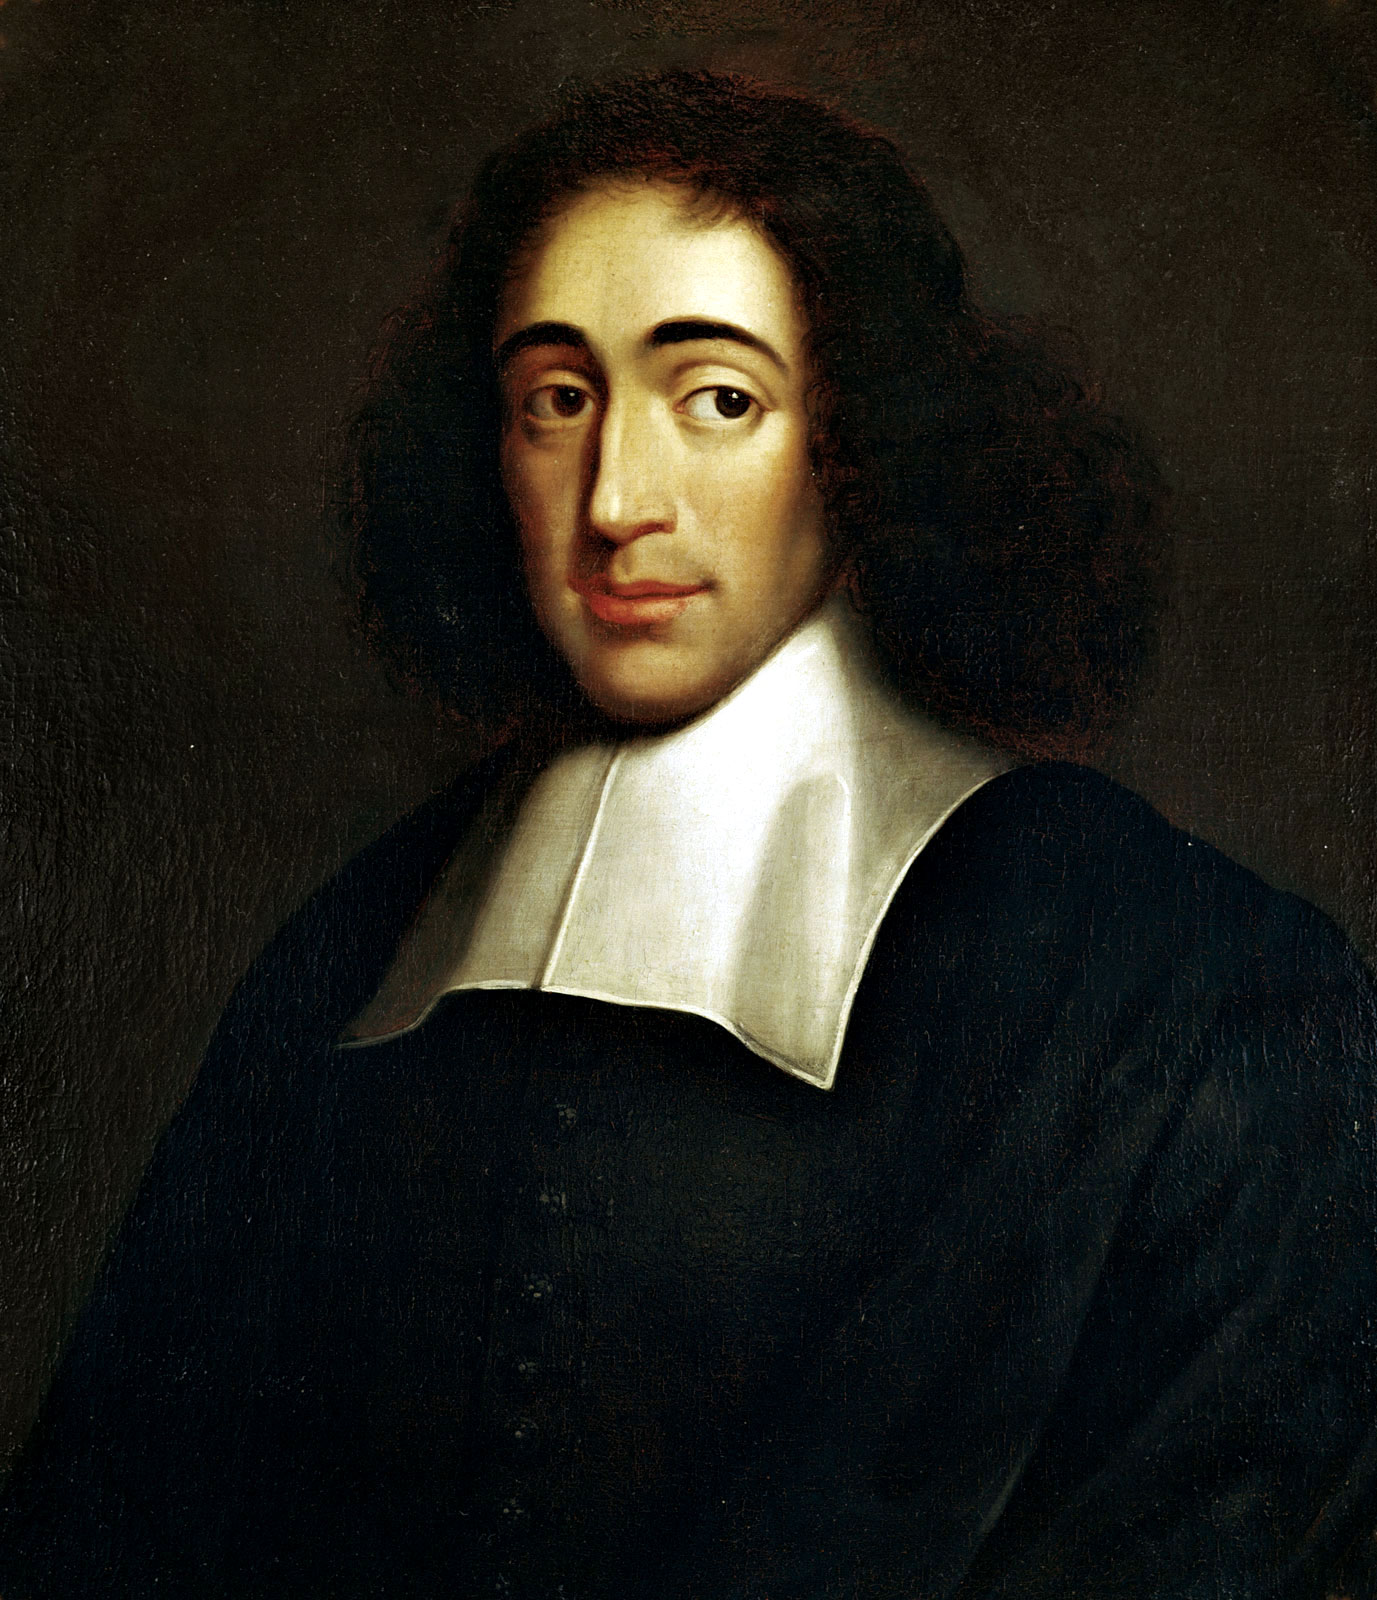 Depiction of Baruch Spinoza